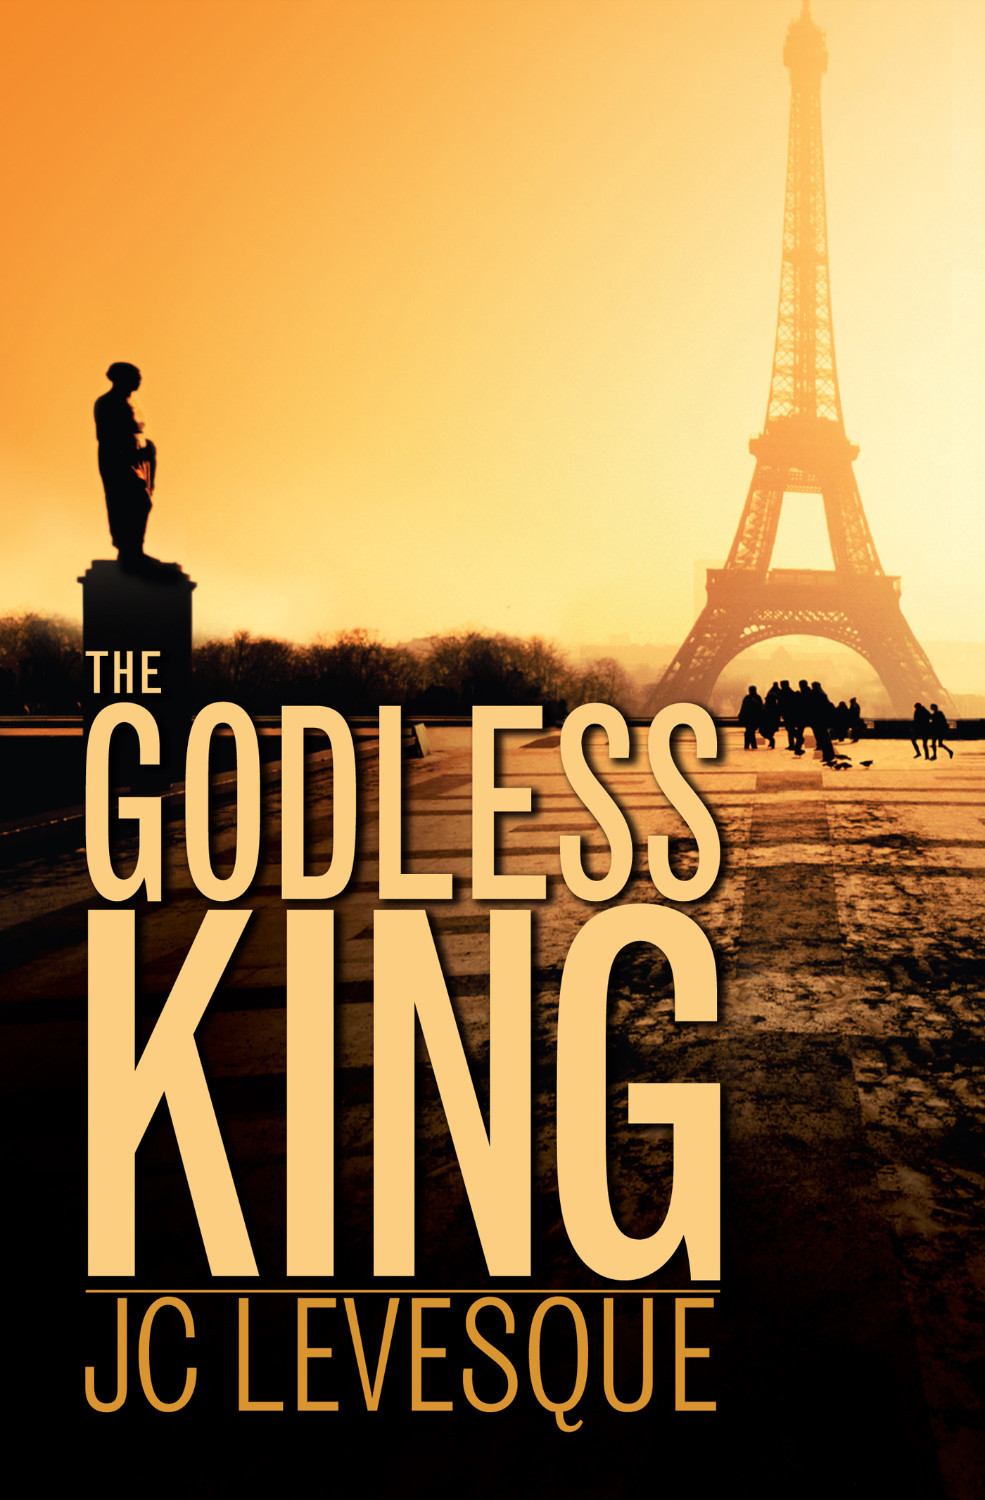 GodlessKing_Cover_RGB_537-101.jpg